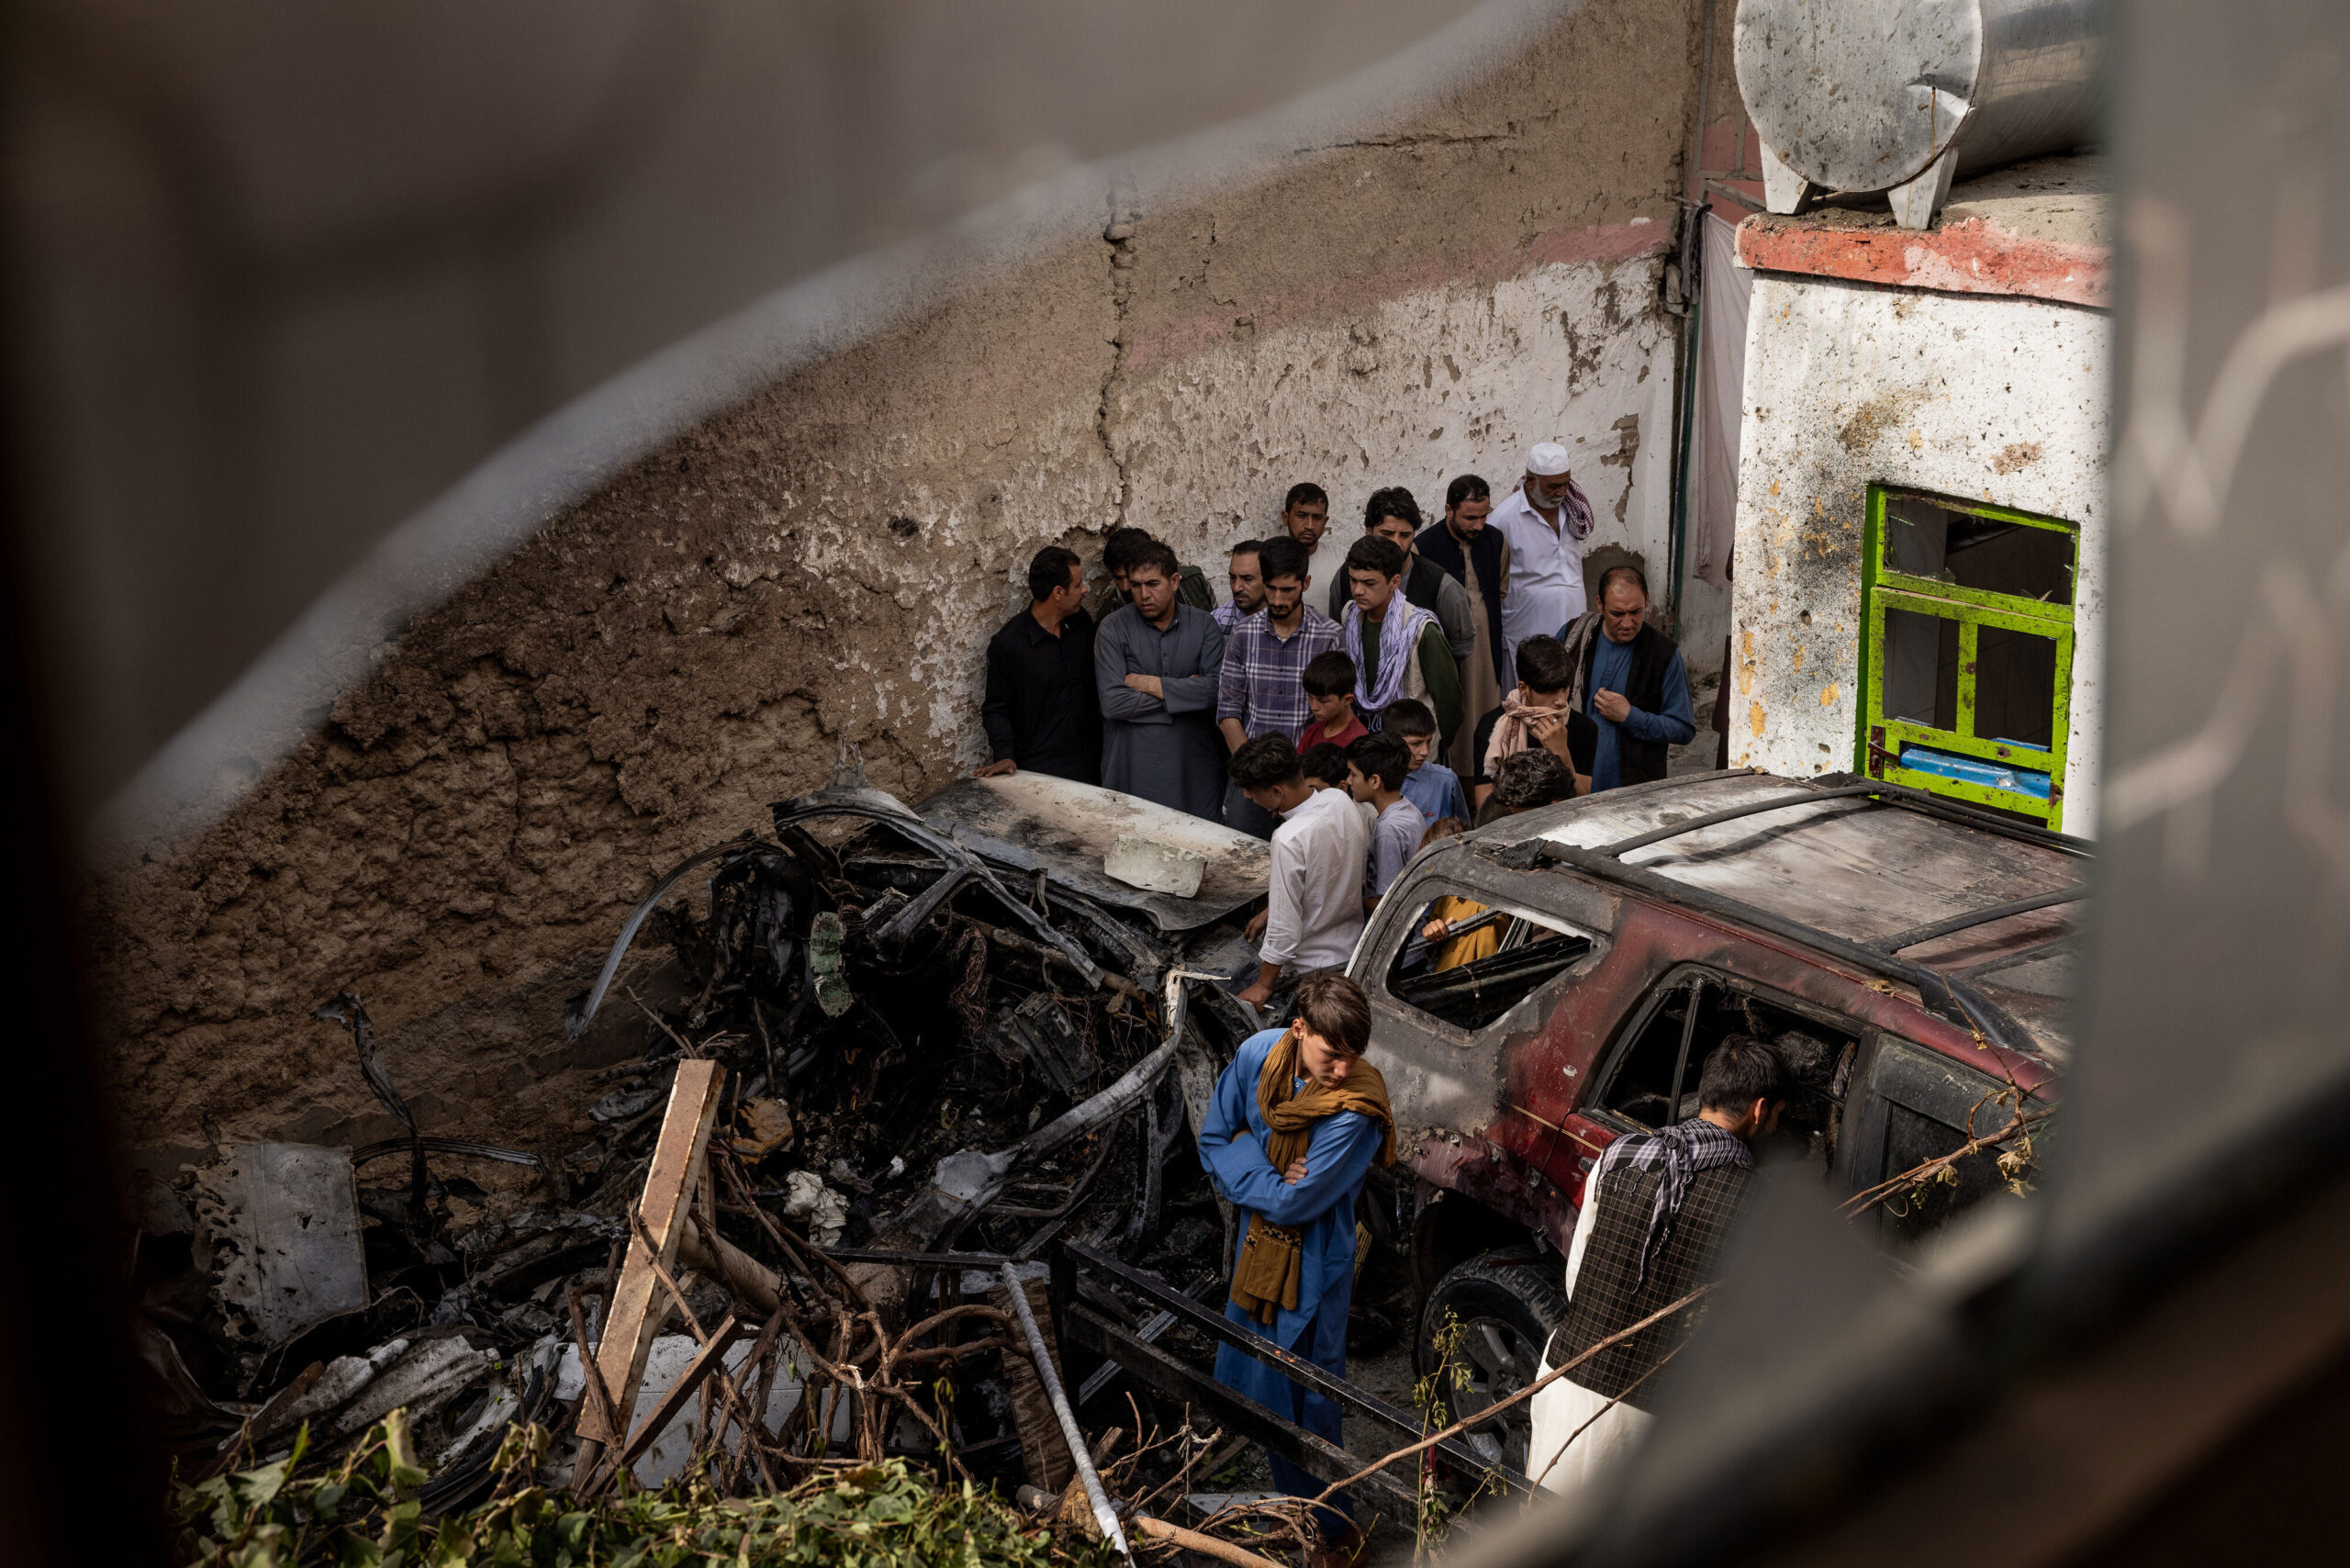 <i>Jim Huylebroek/The New York Times/Redux</i><br/>Relatives and neighbors inspect damage in the cramped courtyard of a house in Kabul